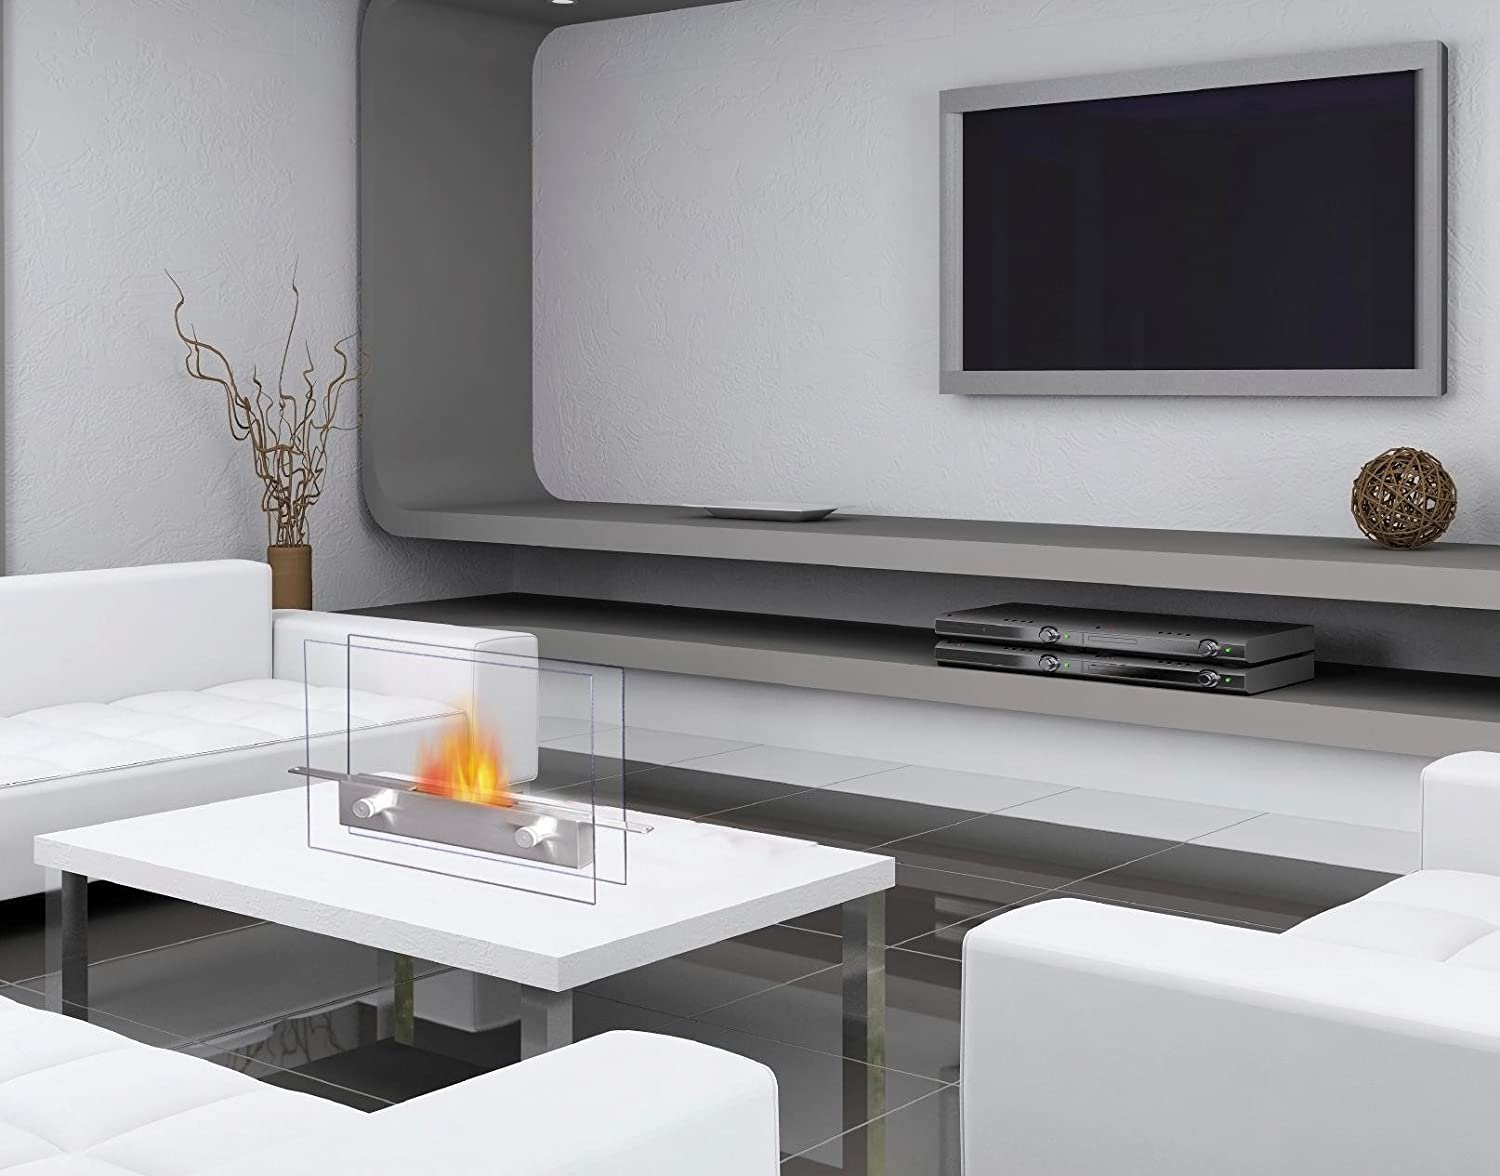 Amazon metropolitan table top ethanol fireplace home kitchen geotapseo Image collections